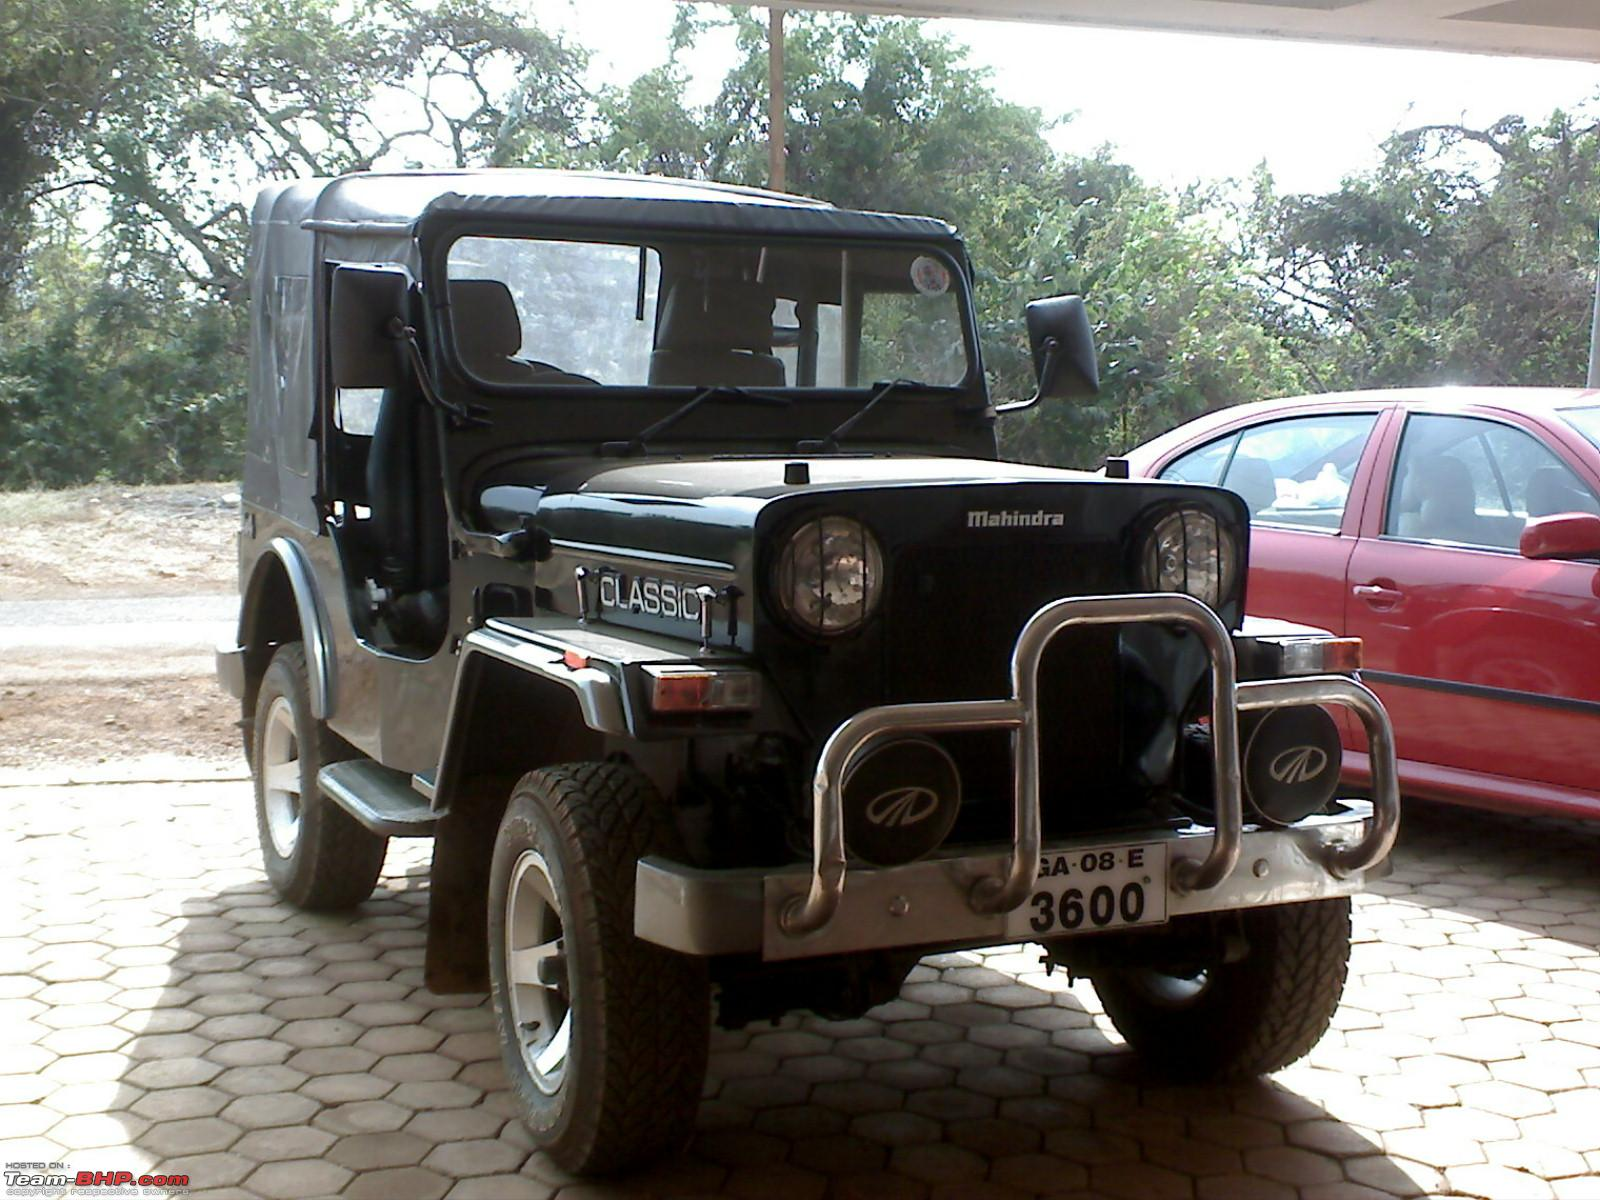 Mahindra 4x4 photo - 7